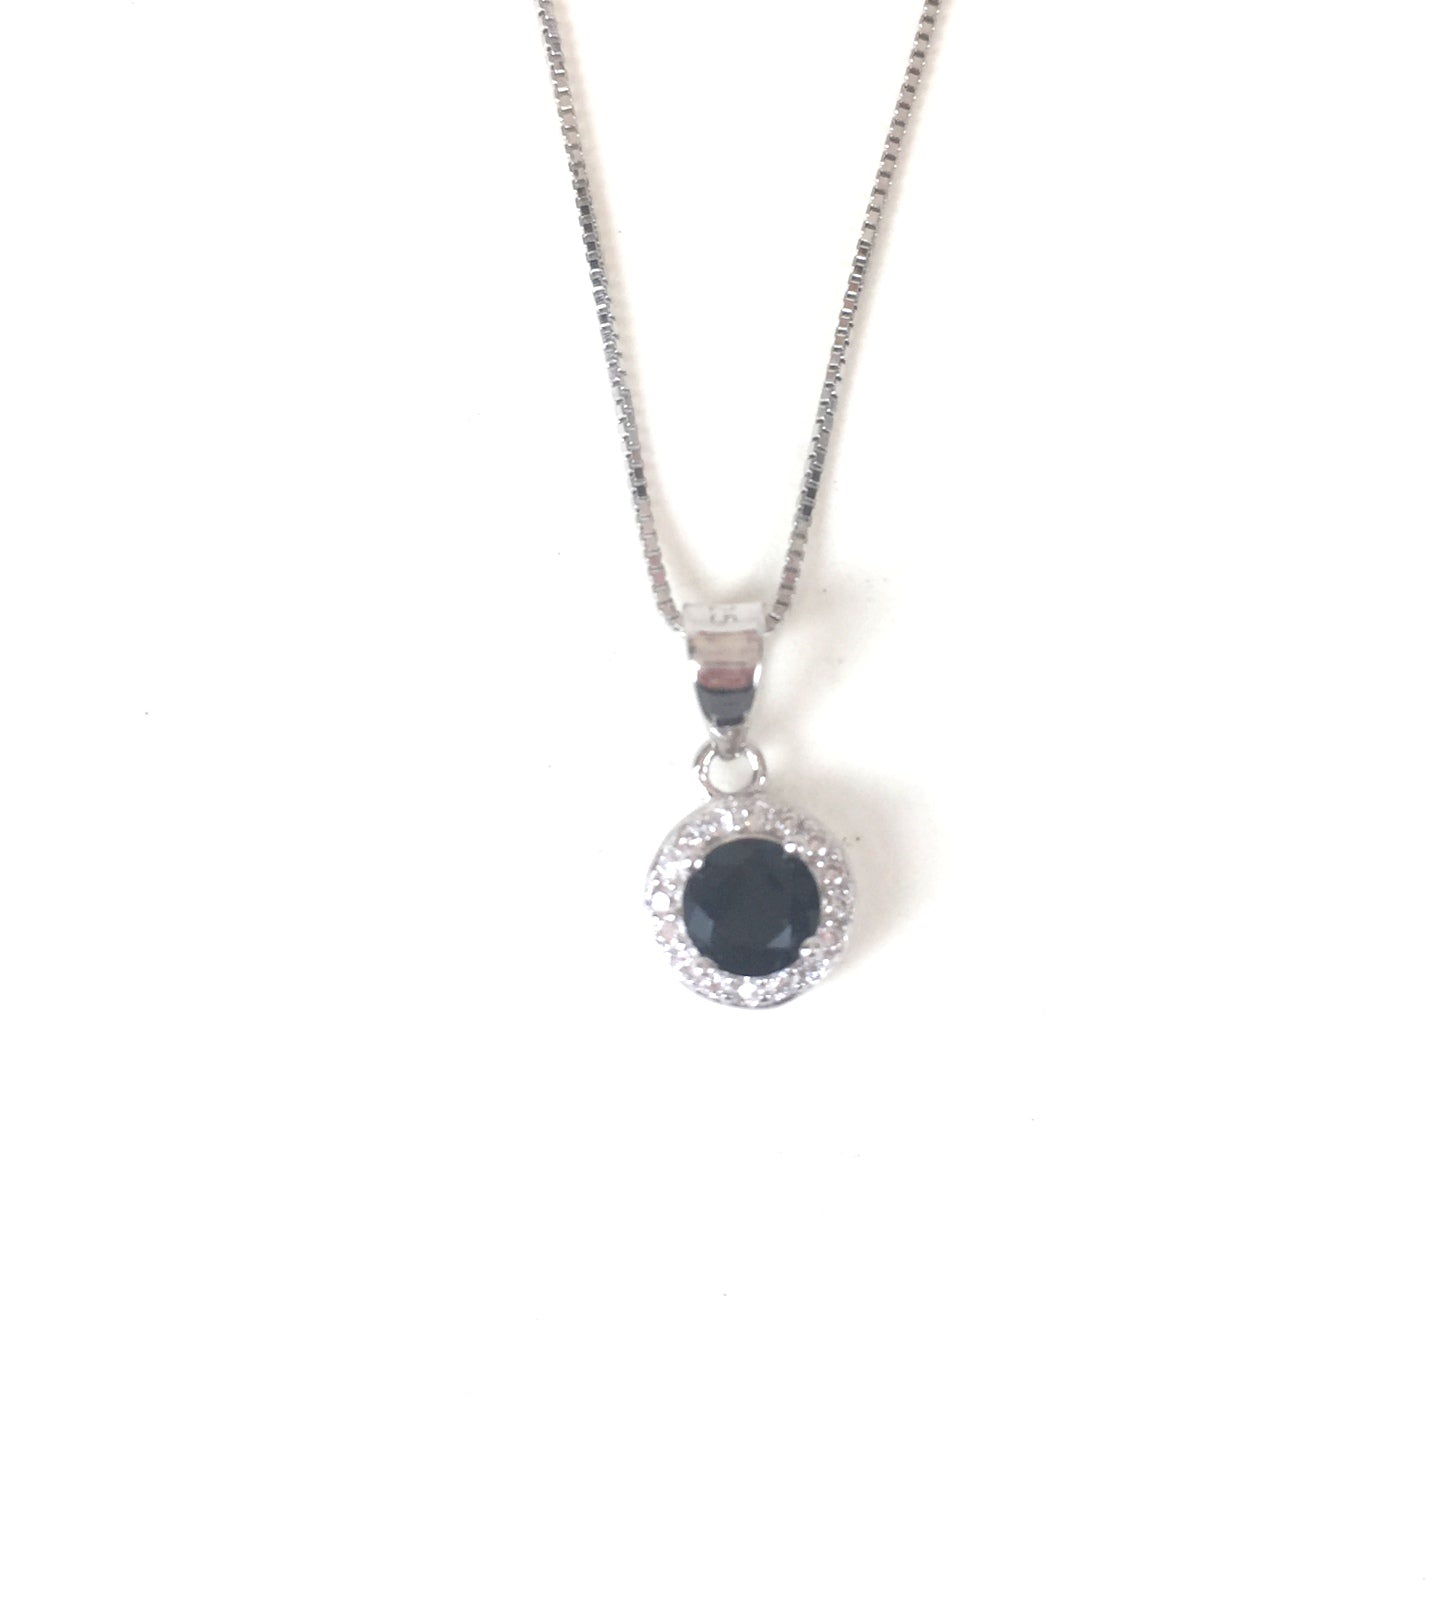 SMALL BLACK CRYSTAL PAVE CZ STERLING SILVER NECKLACE